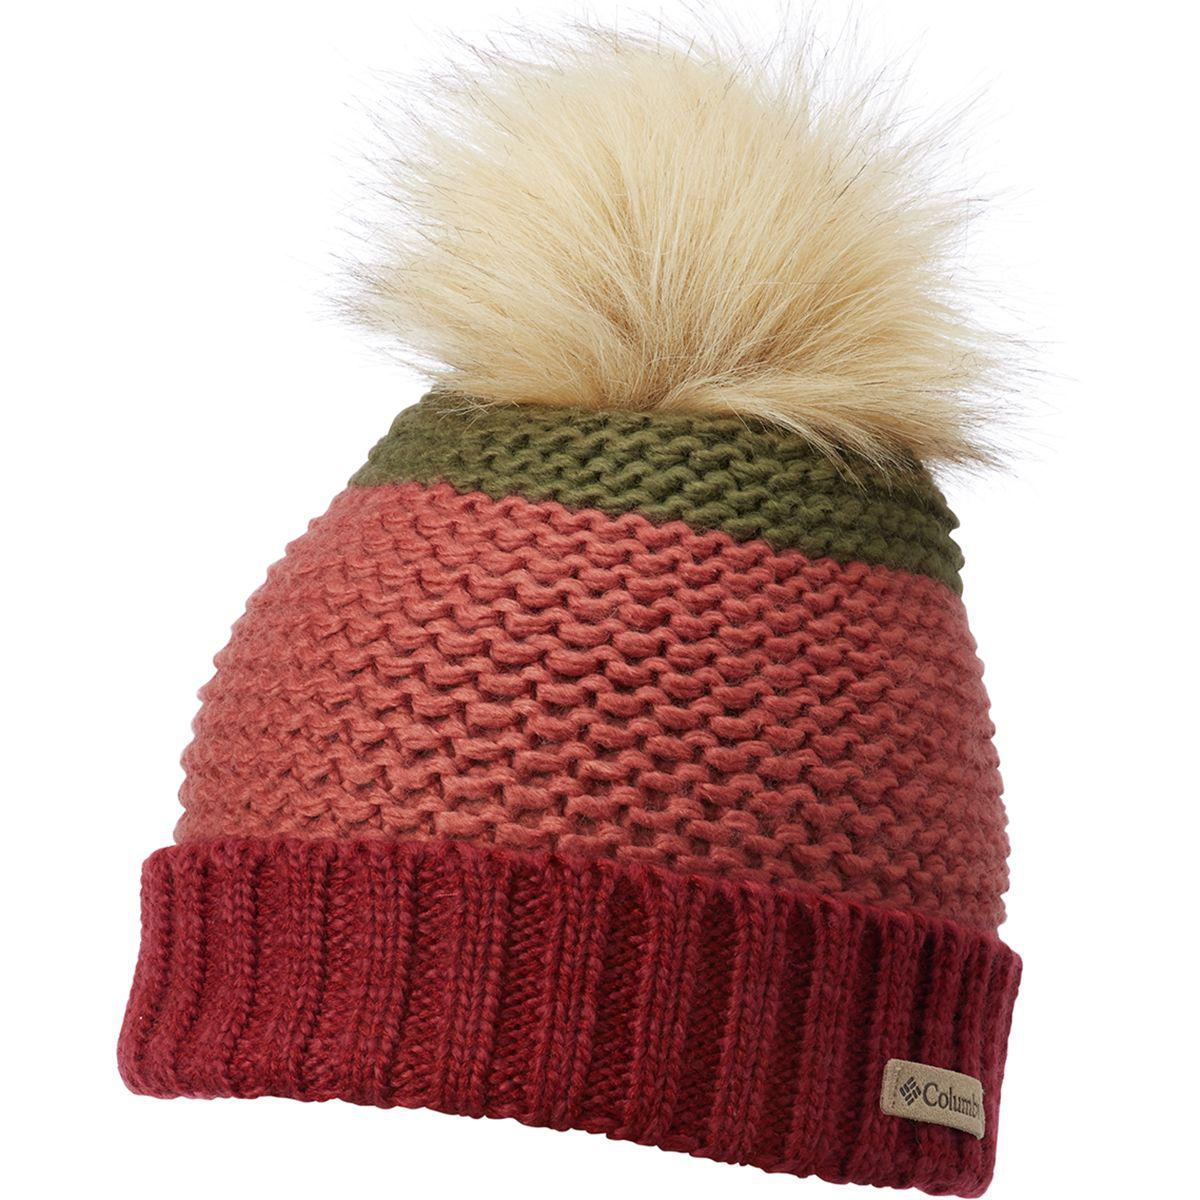 d2c52a5fae351 Lyst - Columbia Holly Peak Pom Pom Beanie in Red for Men